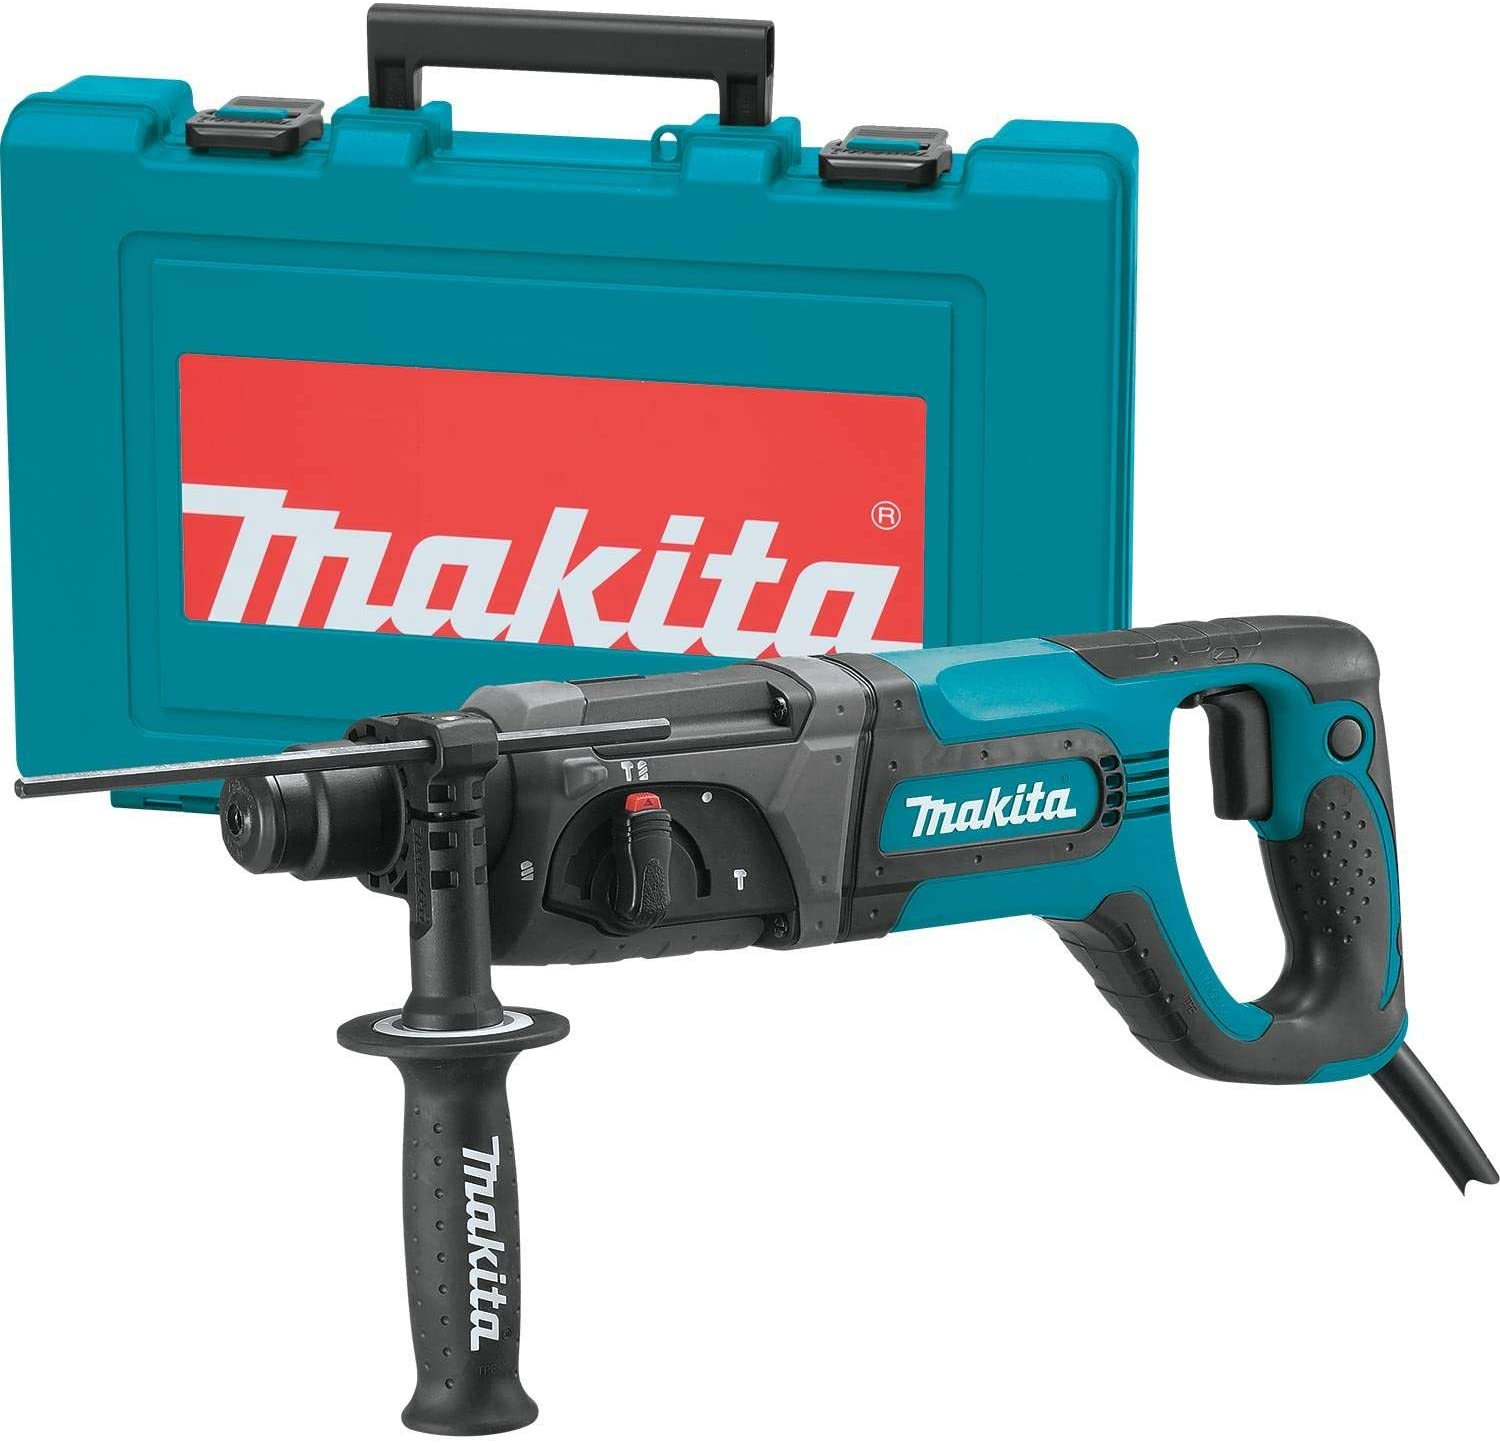 2. Makita HR2475 1-Inch D-Handle Rotary Hammer